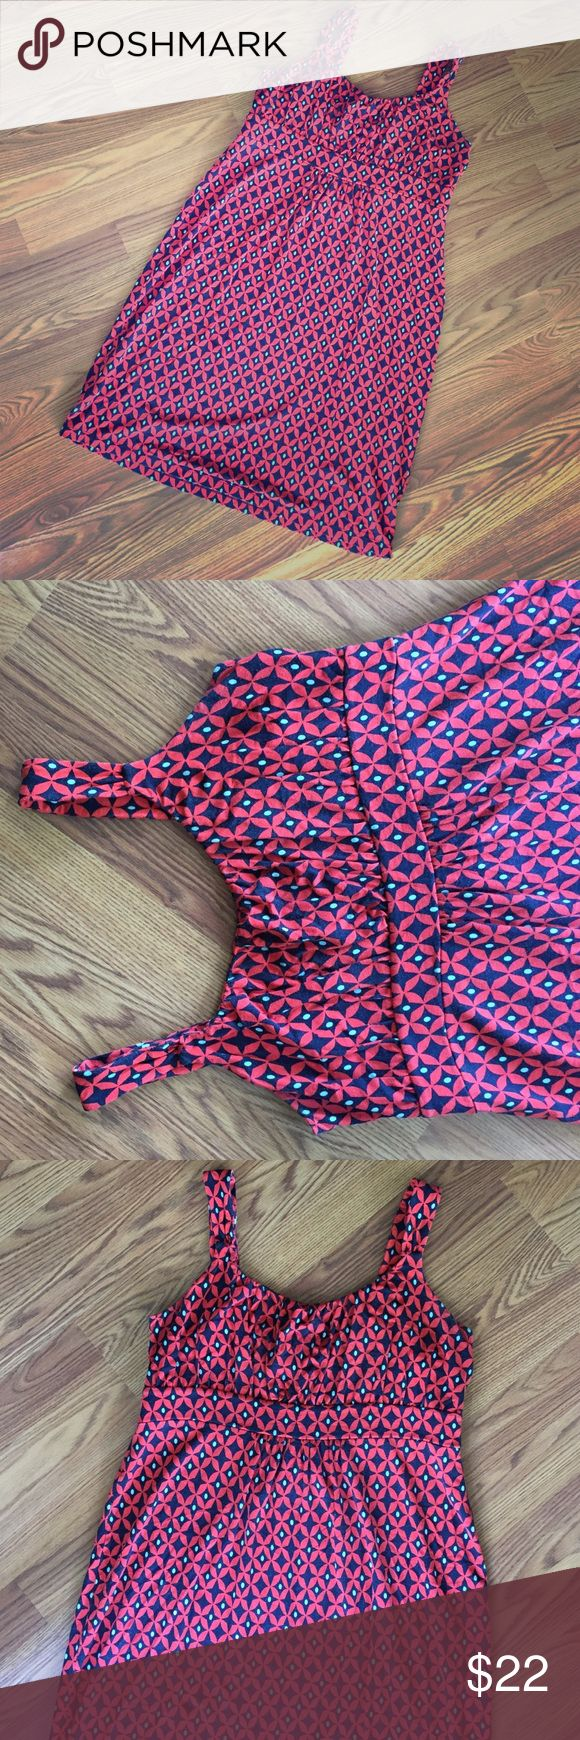 LOFT jersey knit dress. Petite large. Very cool geometric pattern in coral, navy, and aqua. Knee length. Empire waist. Slight pleating at bust. Straps wide enough to wear a regular bra! Petite large fits a 10-12 best! LOFT Dresses